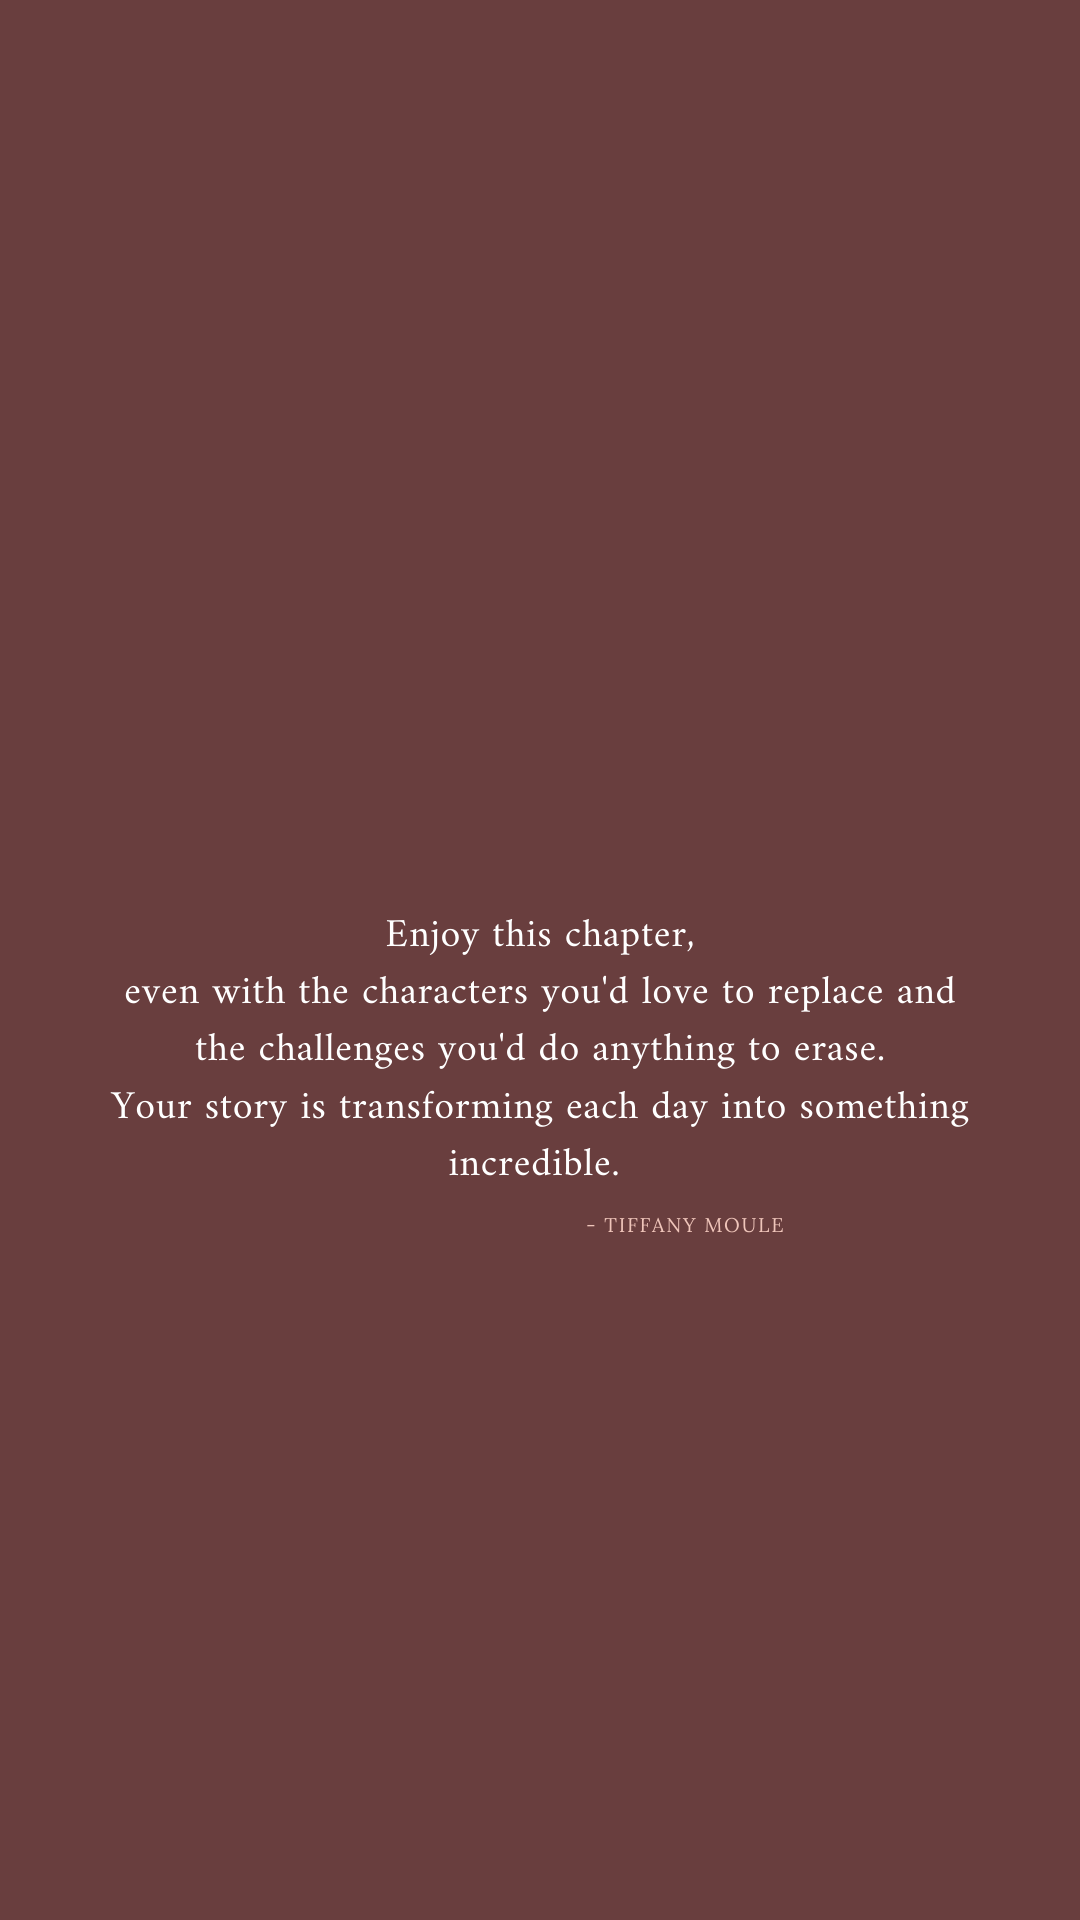 Enjoy this chapter, your story is transforming each day into something beautiful #story #quote